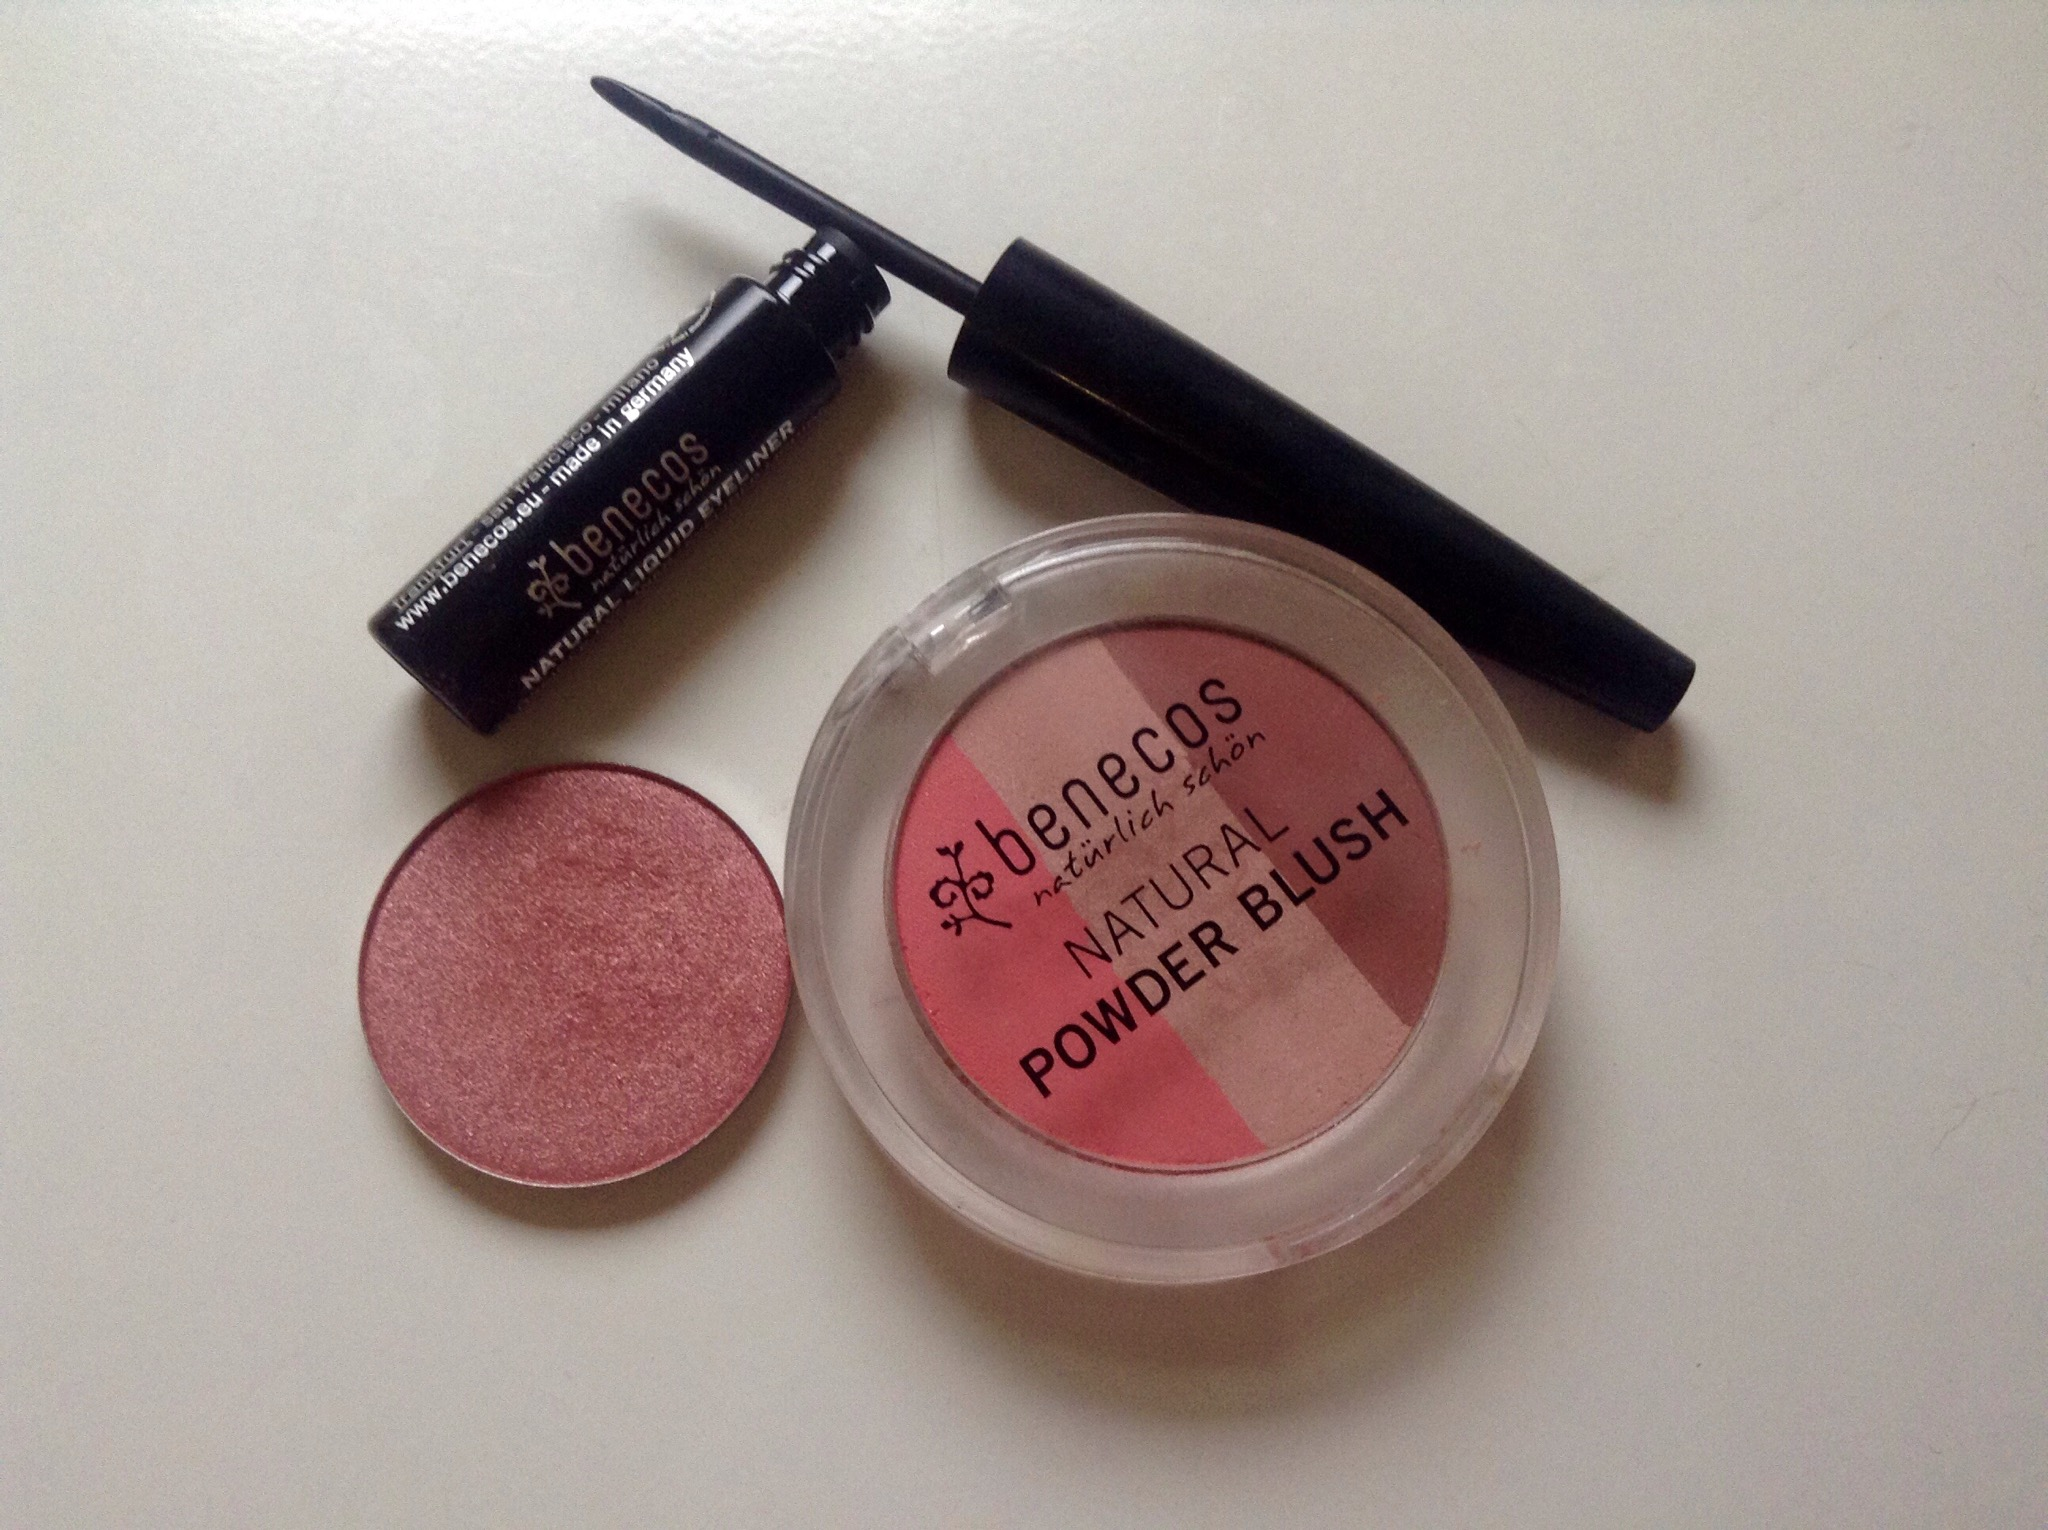 Benecos Natural Liquid Eyeliner, Benecos Natural Trio Blush, Neve Cosmetics Ombretto in Cialda Ornament